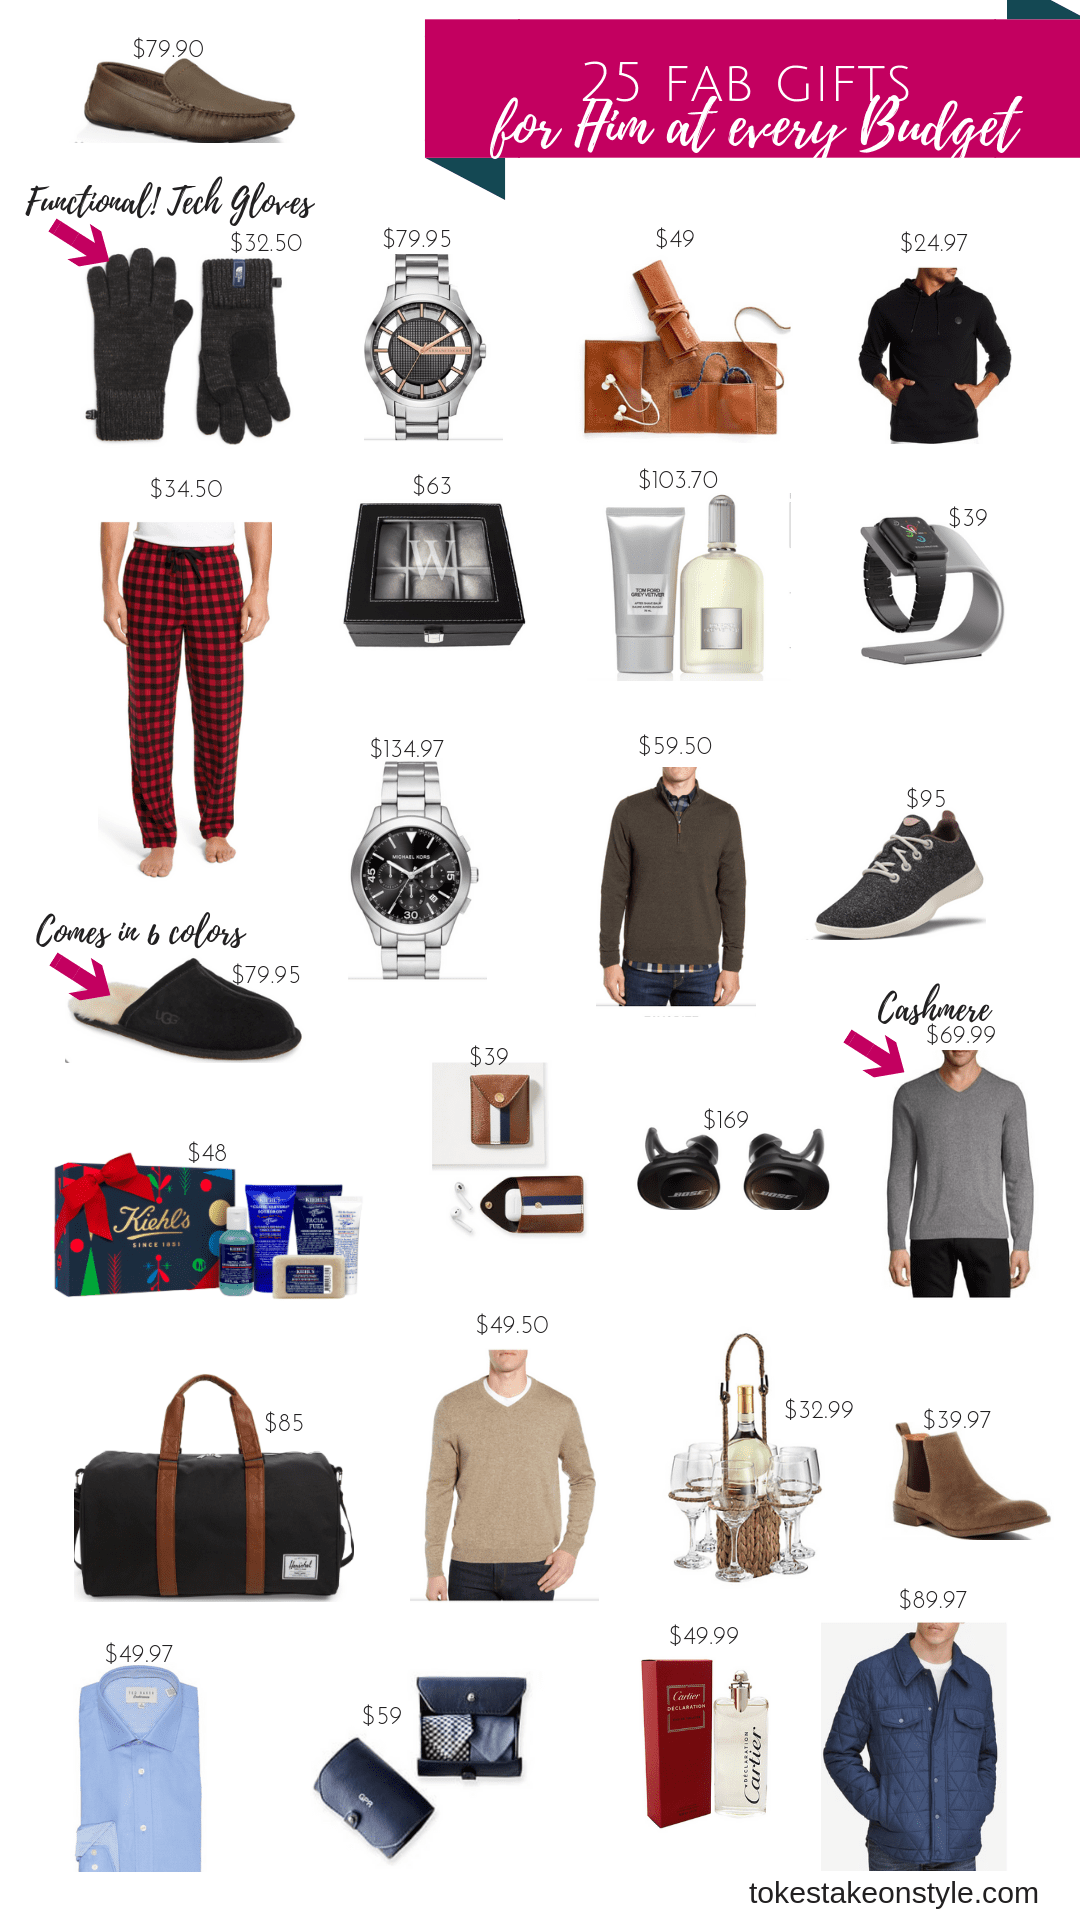 tokestakeonstyle-christmas-gifts-for-him-every-budget-2018